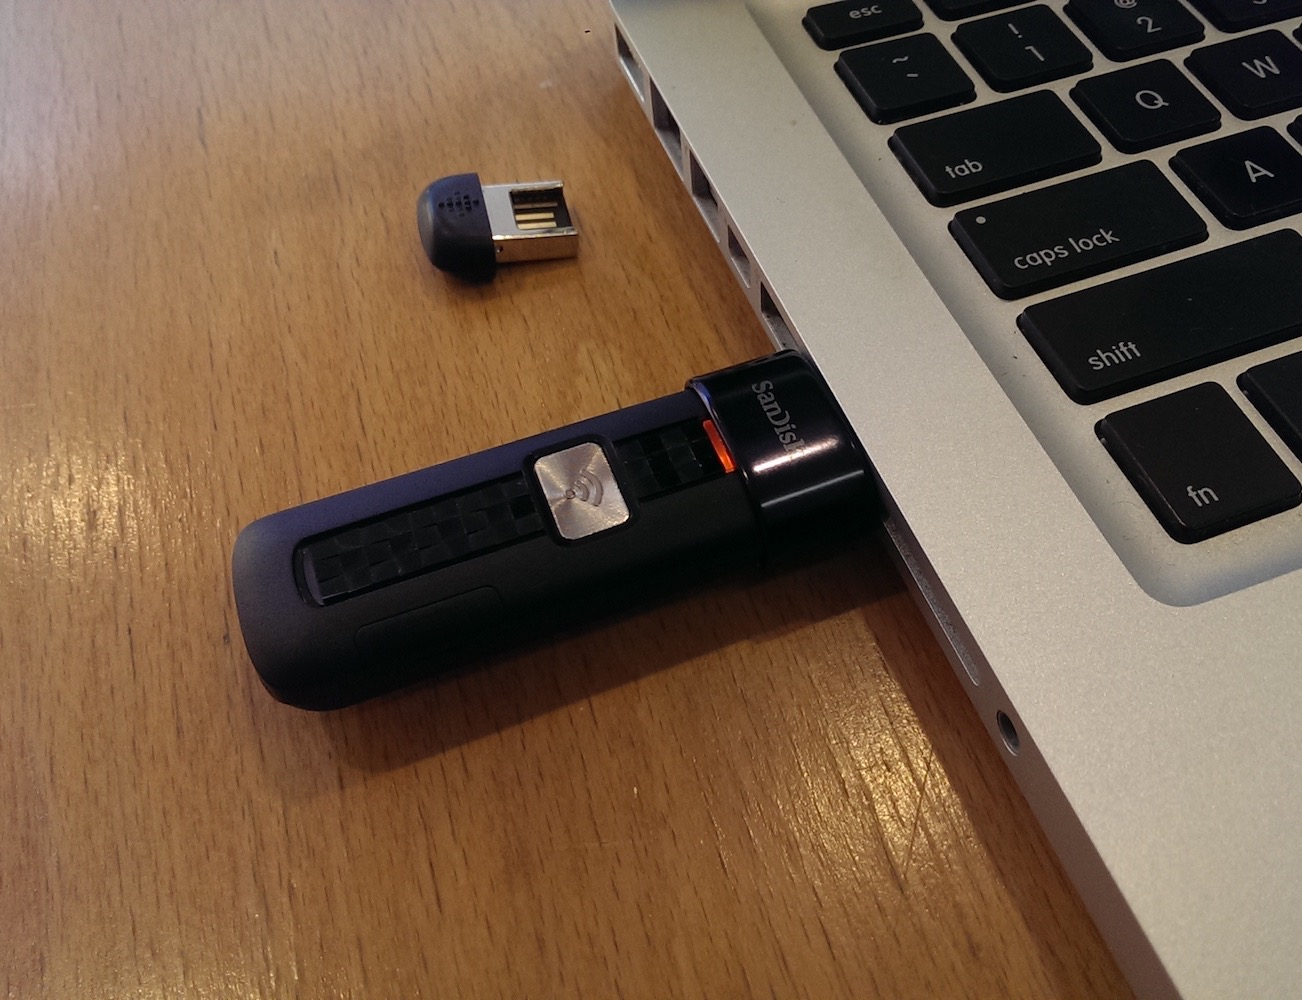 SanDisk Connect Wireless Flash Drive for Smartphones and Tablets